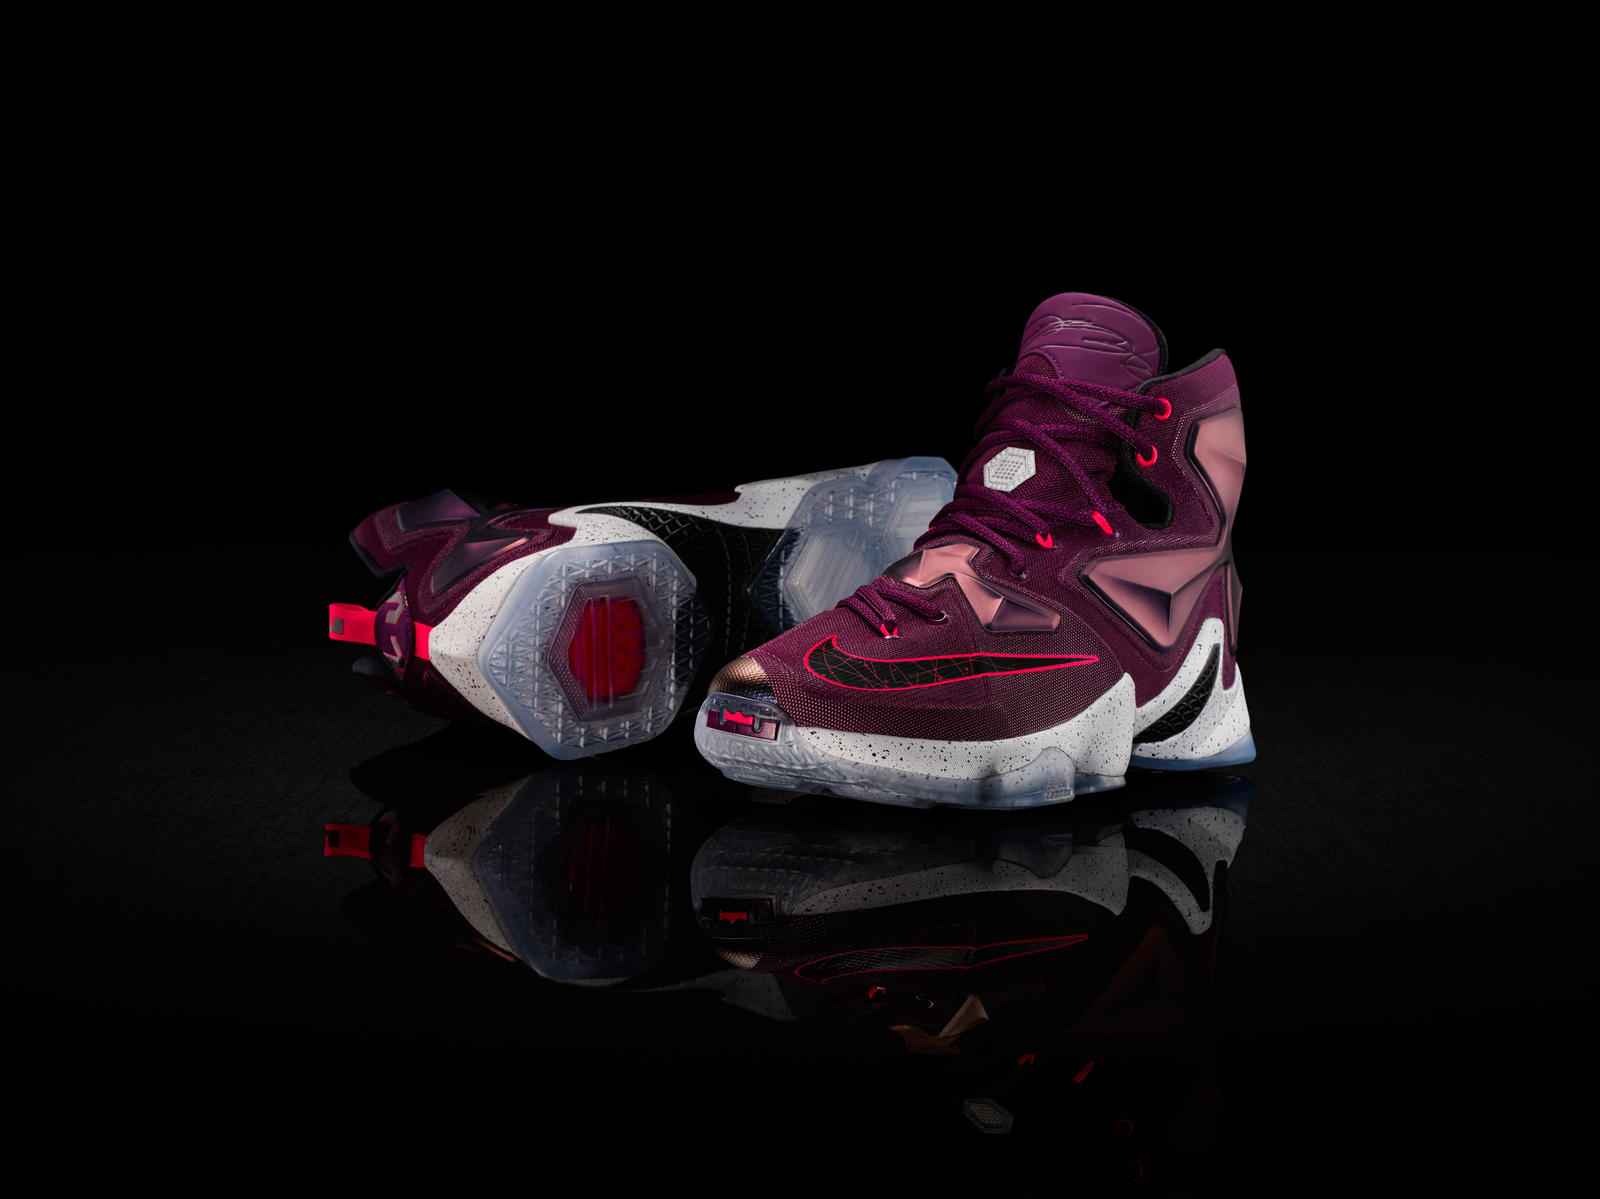 bb981ad322a6 LEBRON 13  Built for Explosiveness - Nike News